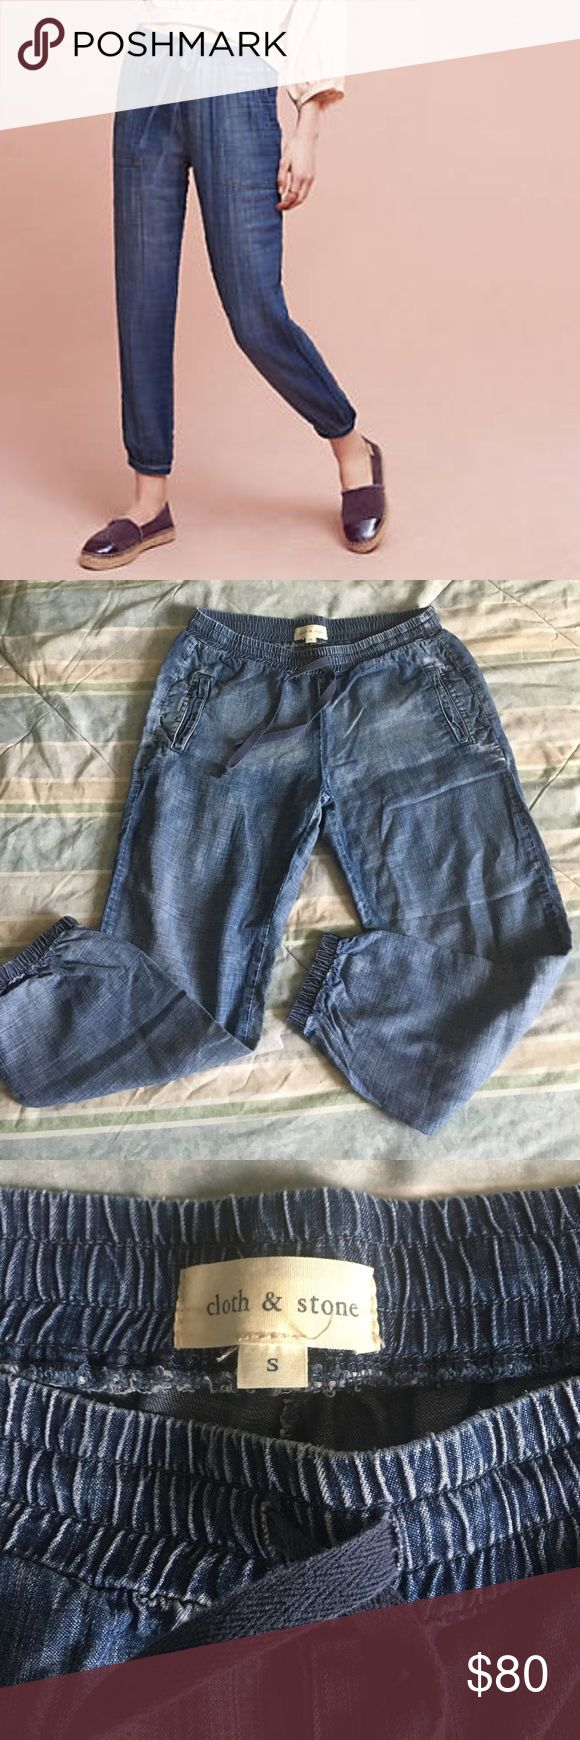 "Cloth & Stone Denim Jogger Pants Tencel, drawstring waist, loose fit, cinched ankles, 24"" inseam, 10"" leg opening, 9"" rise, 26""-27"" waist, in great condition Anthropologie Pants Track Pants & Joggers"